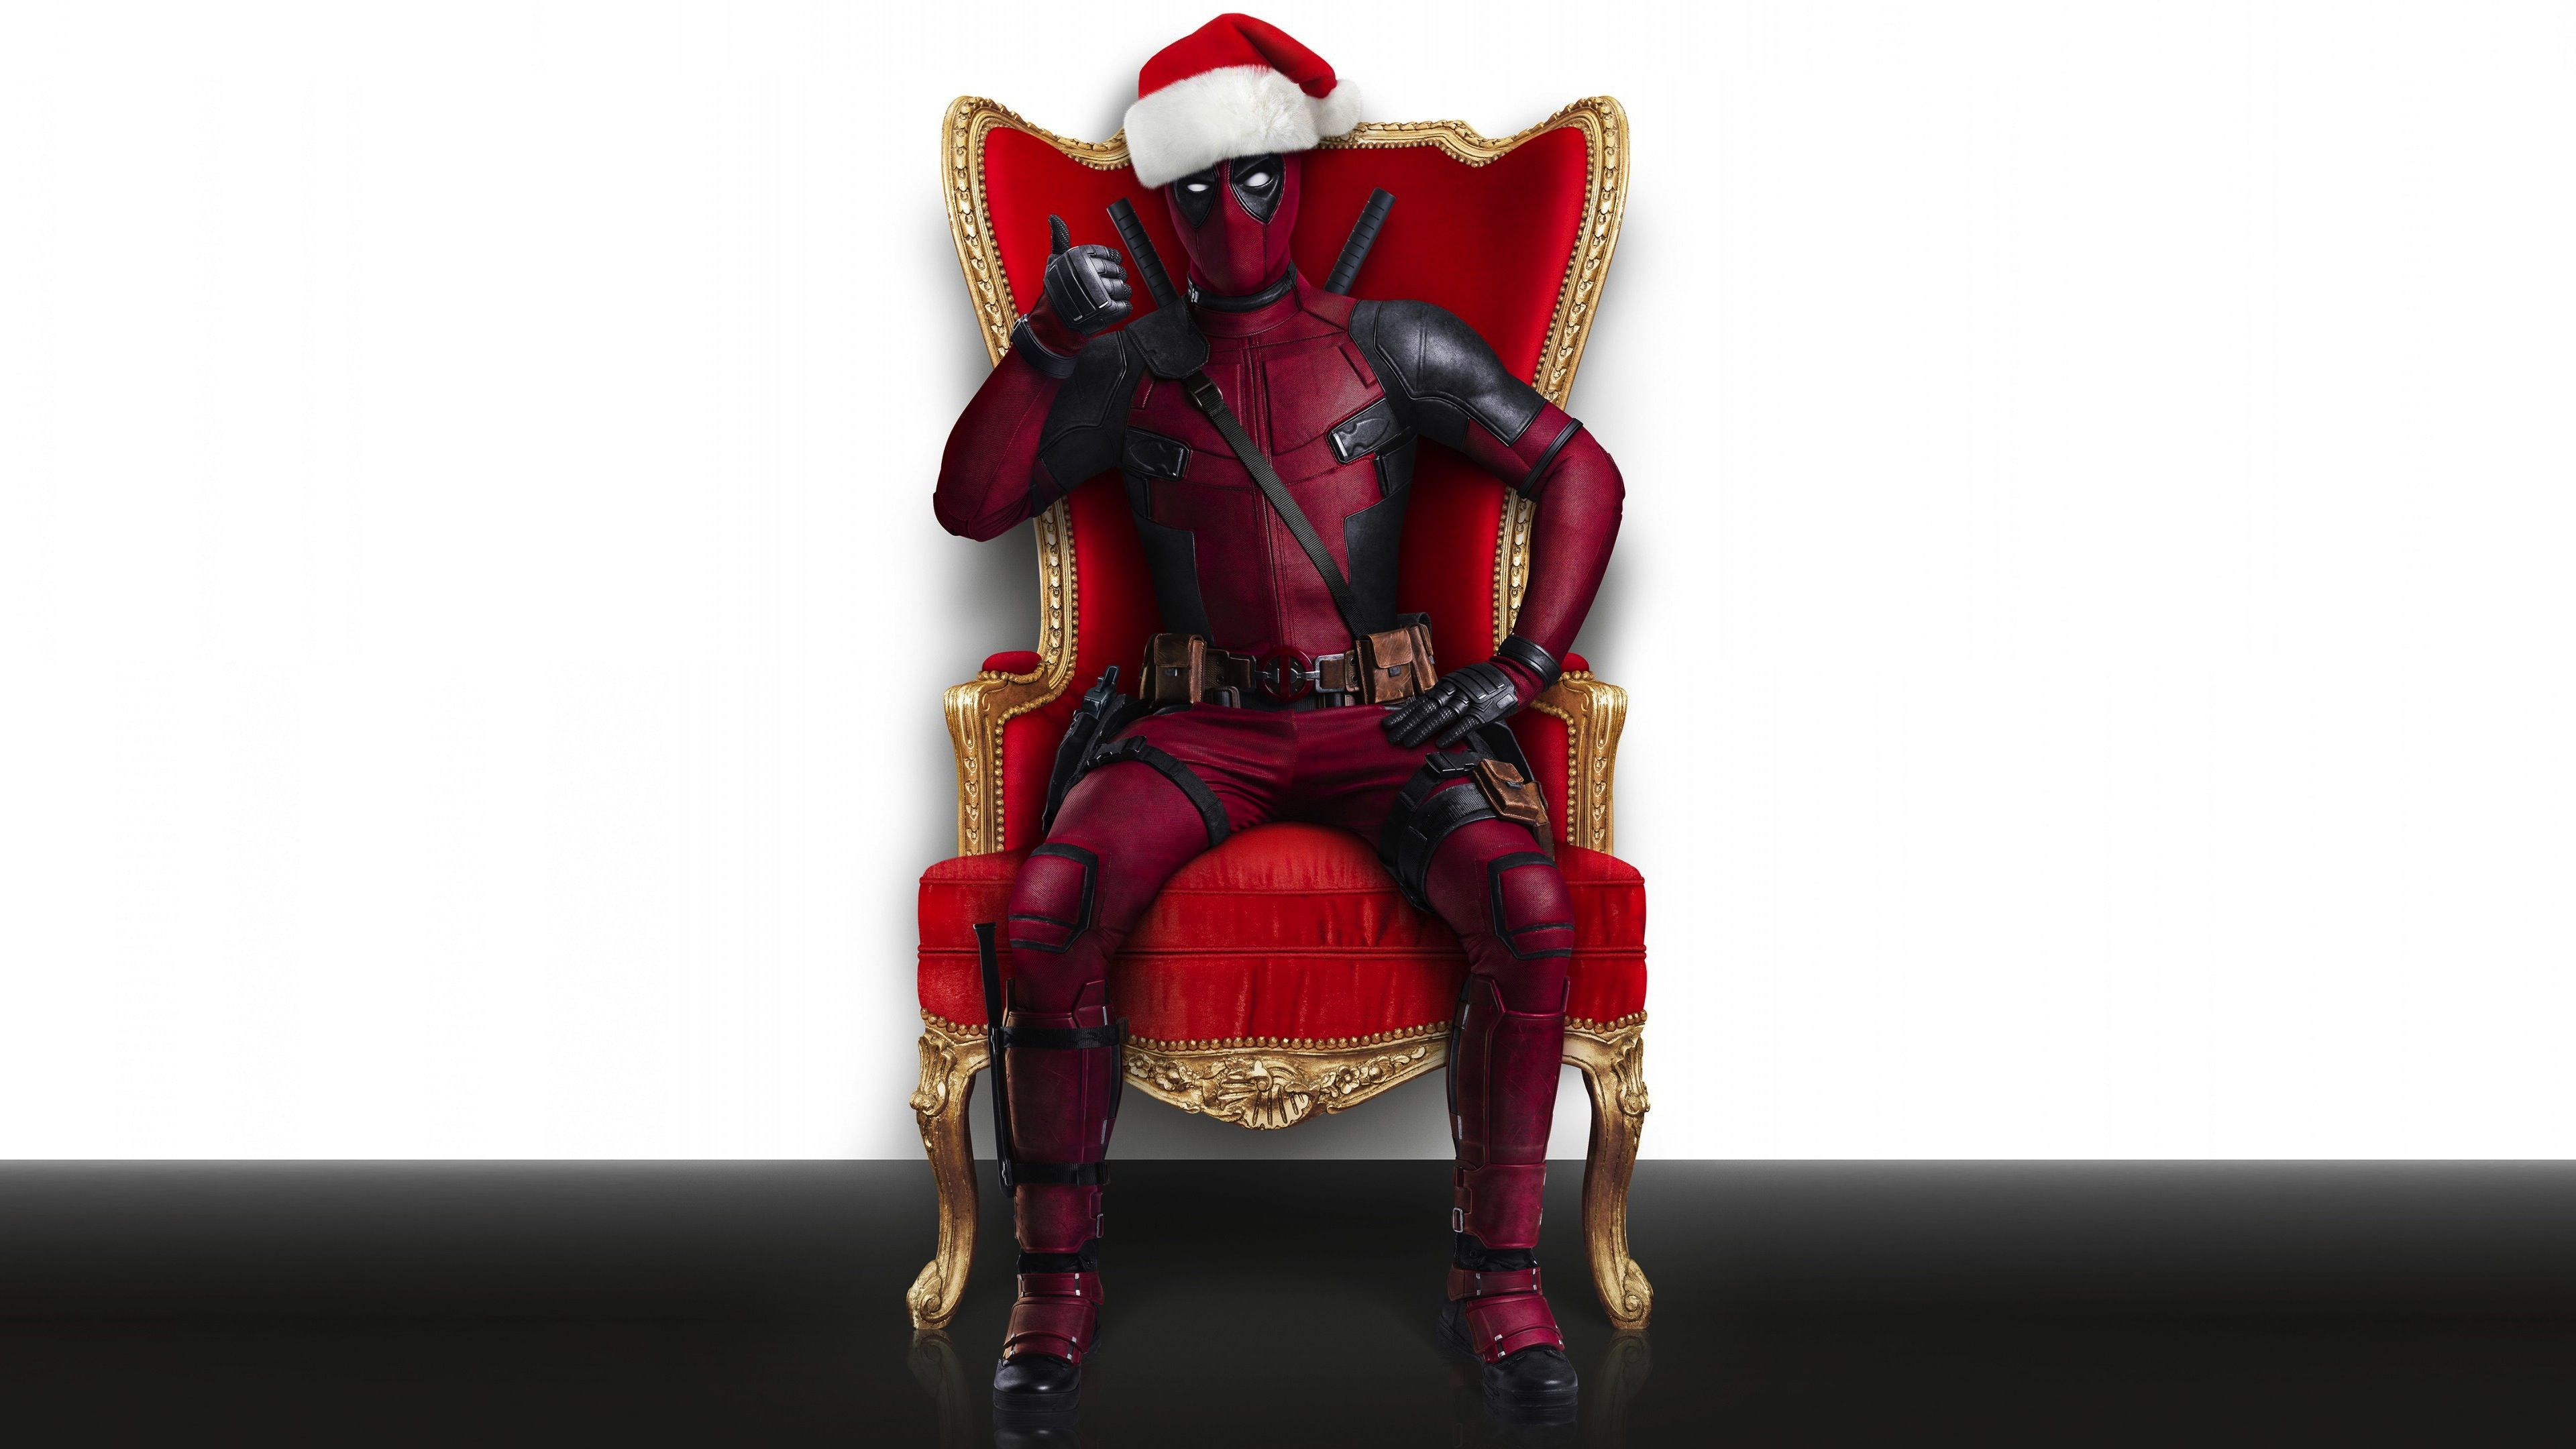 3840x2160 Deadpool Christmas, HD Movies, 4k Wallpapers, Images, Backgrounds ...